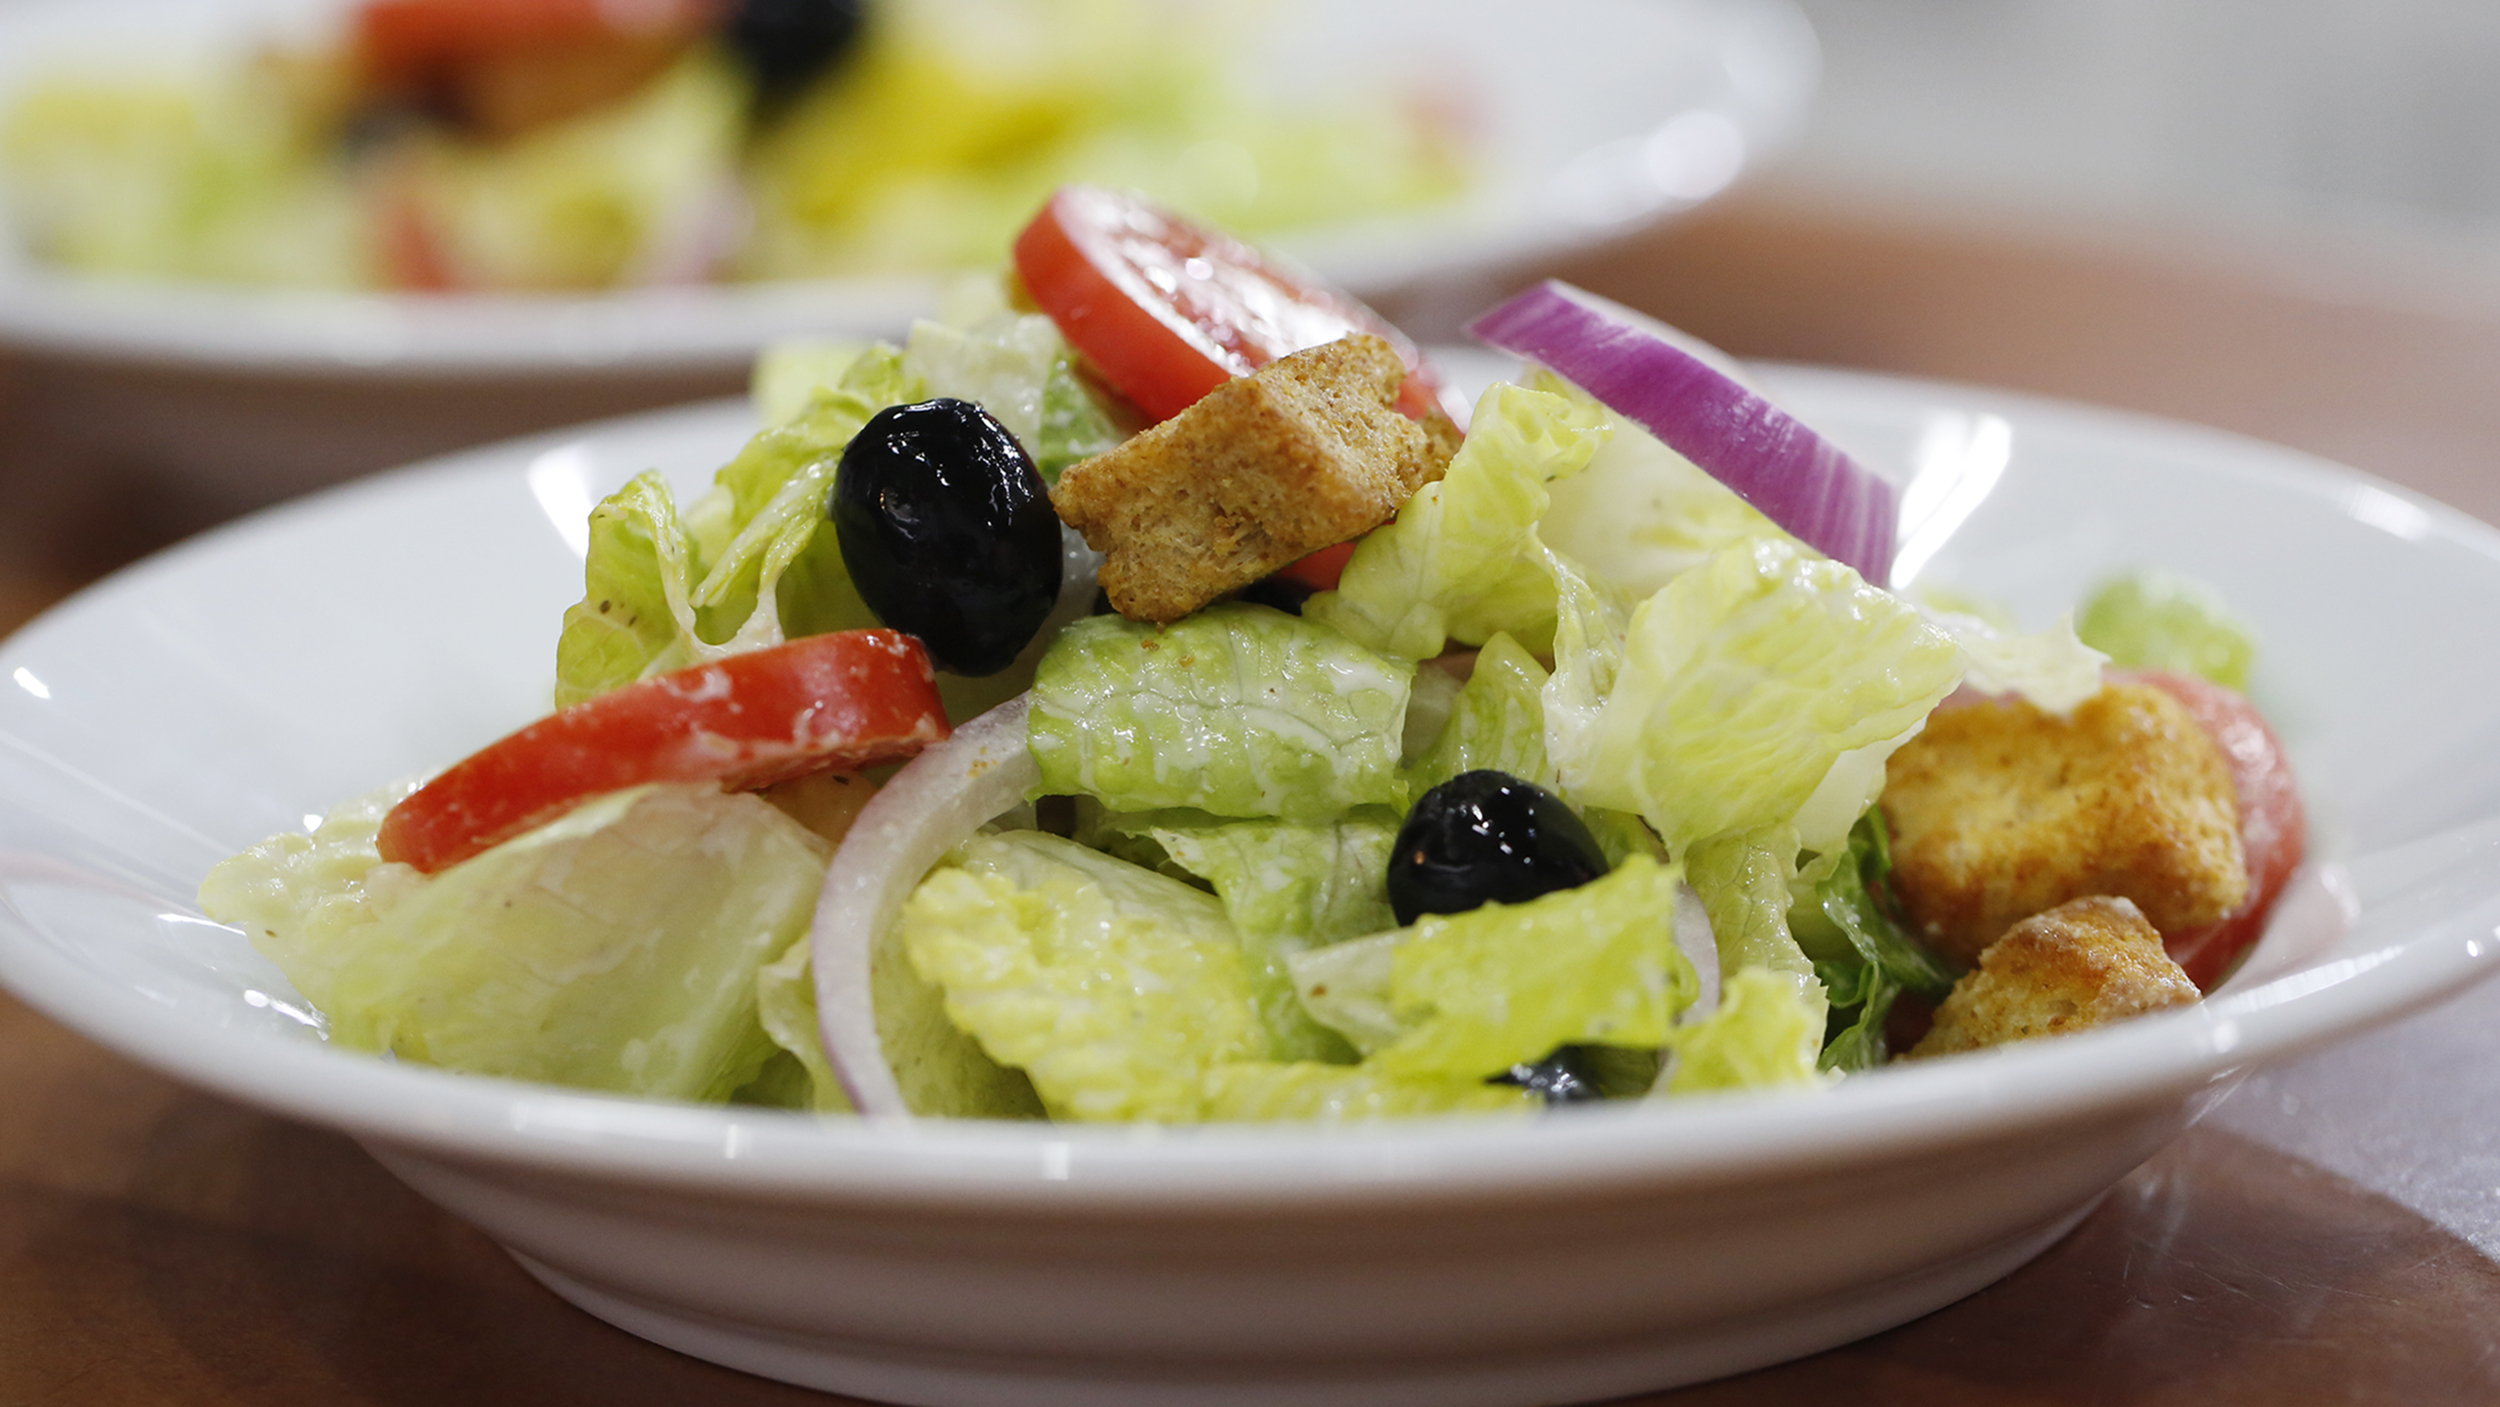 olive garden style salad with creamy italian dressing todaycom - Garden Salad Recipe